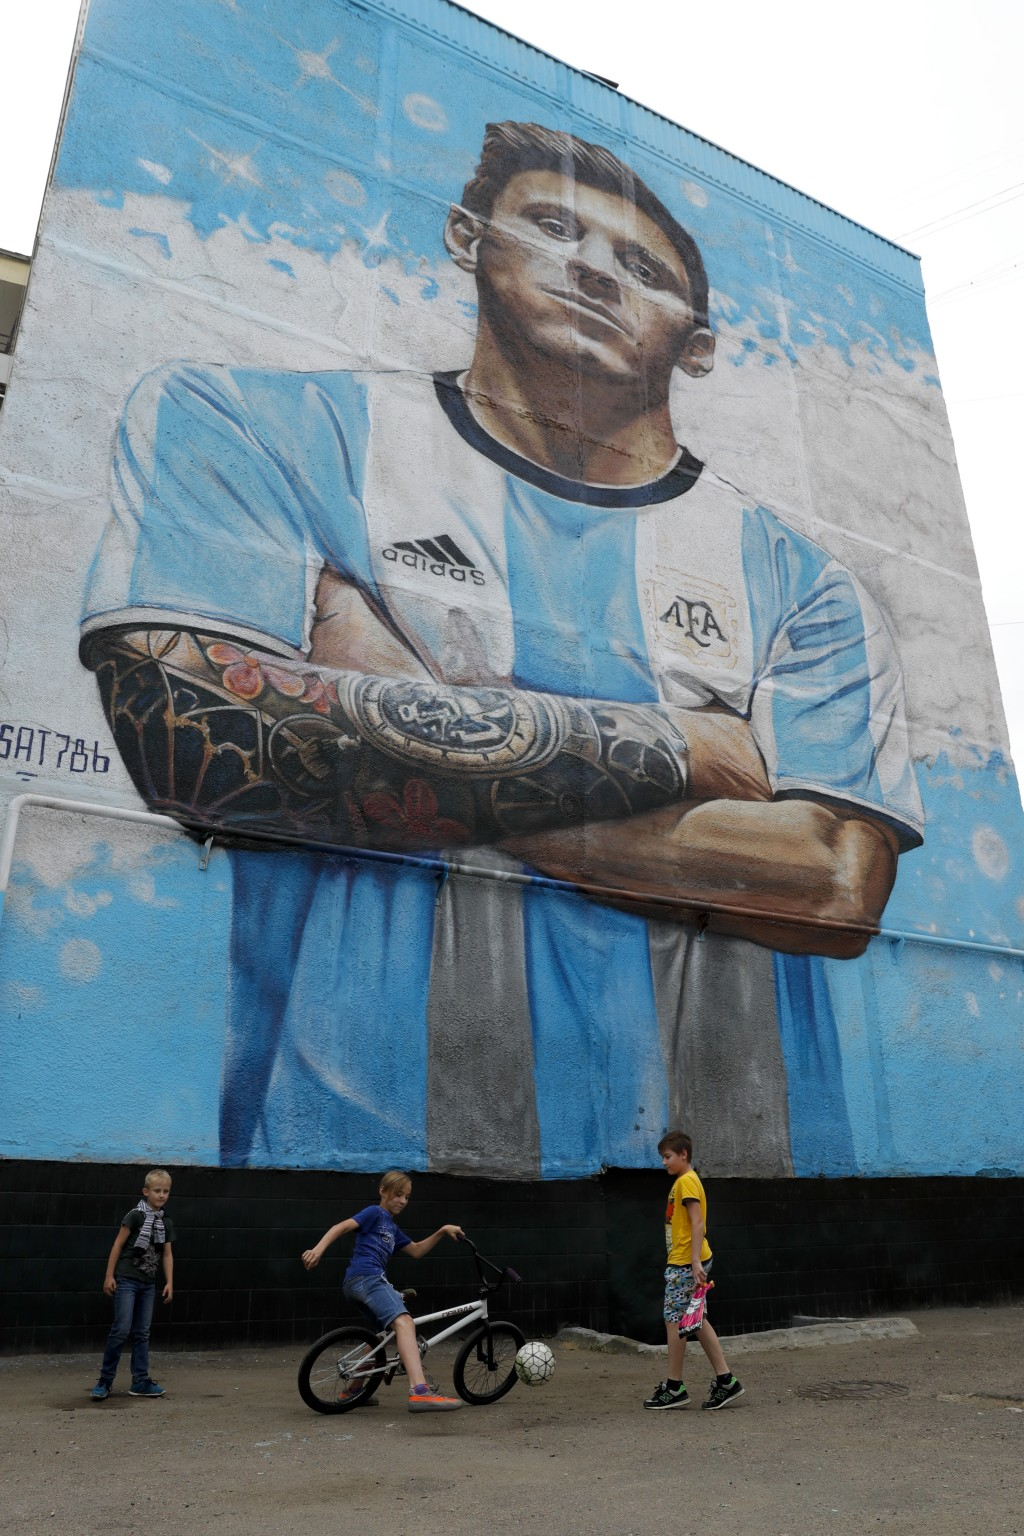 Boys play ball under a mural of Argentina's soccer star Lionel Messi during the 2018 soccer World Cup in Bronnitsy, Russia, Thursday, June 14, 2018. (